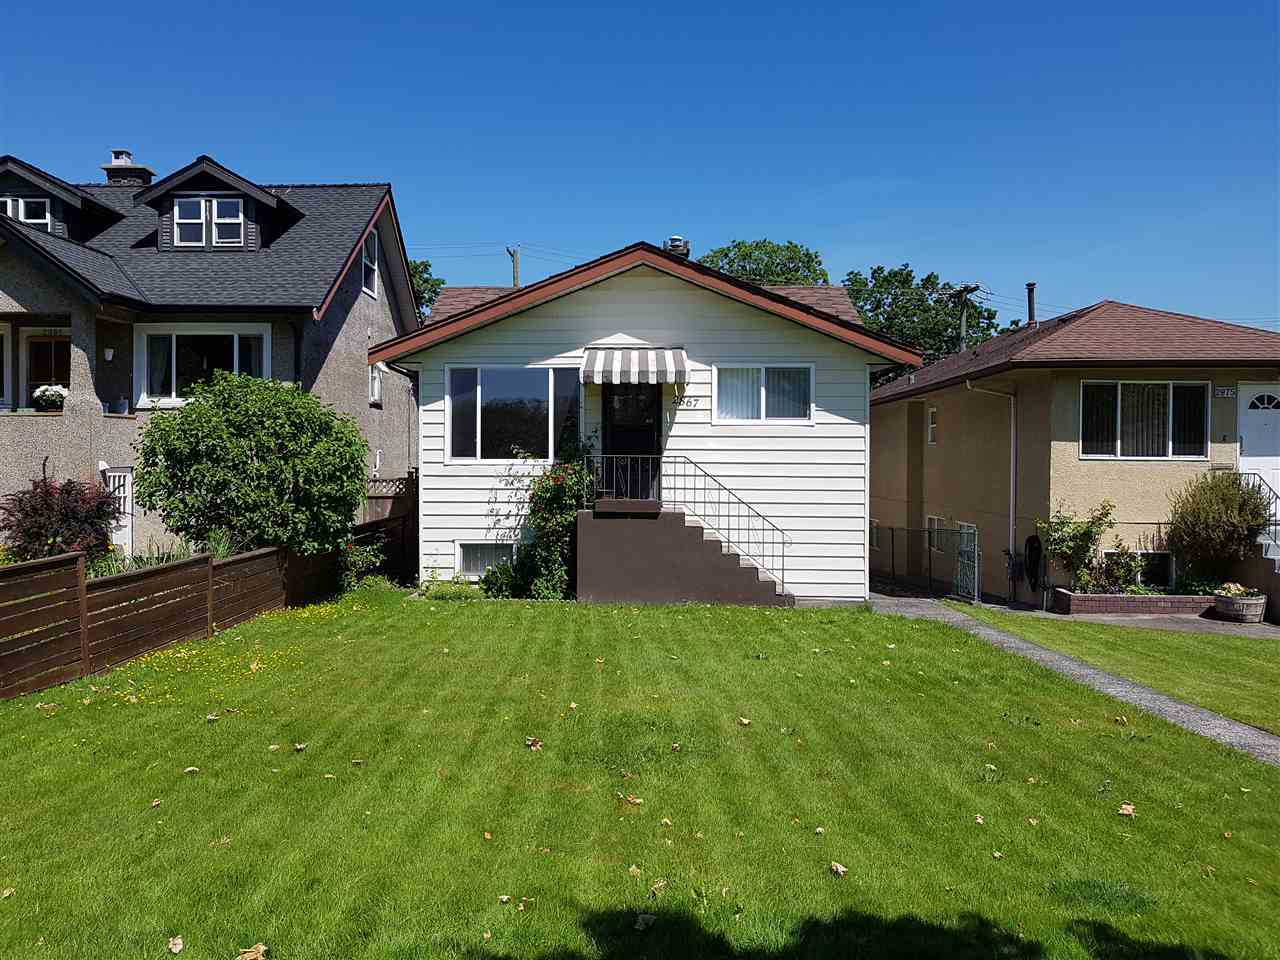 Main Photo: 2867 CAMBRIDGE Street in Vancouver: Hastings East House for sale (Vancouver East)  : MLS® # R2213998